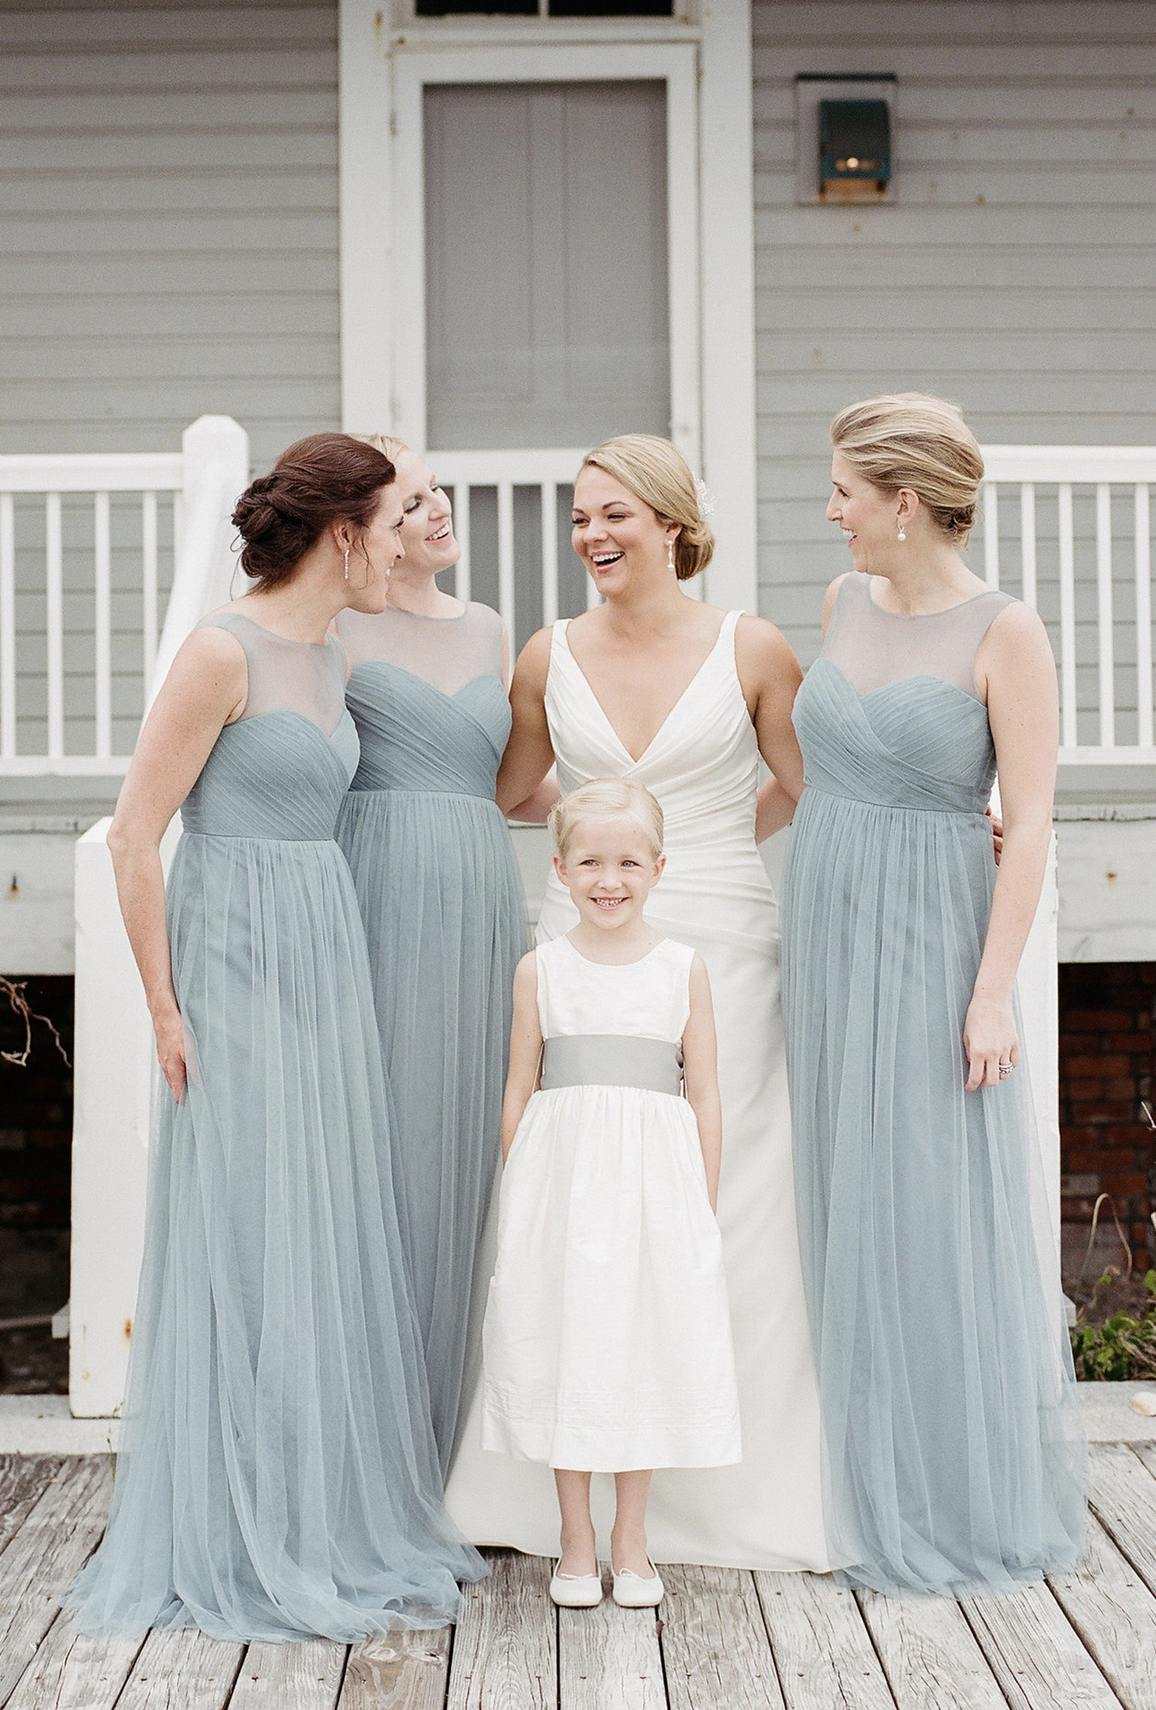 732cd0f0ca Jenny Yoo Bridesmaids, The Aria dress shown in a light shade of blue,  features a sheer illusion bateau neckline. A seam sits at the natural waist  creating a ...